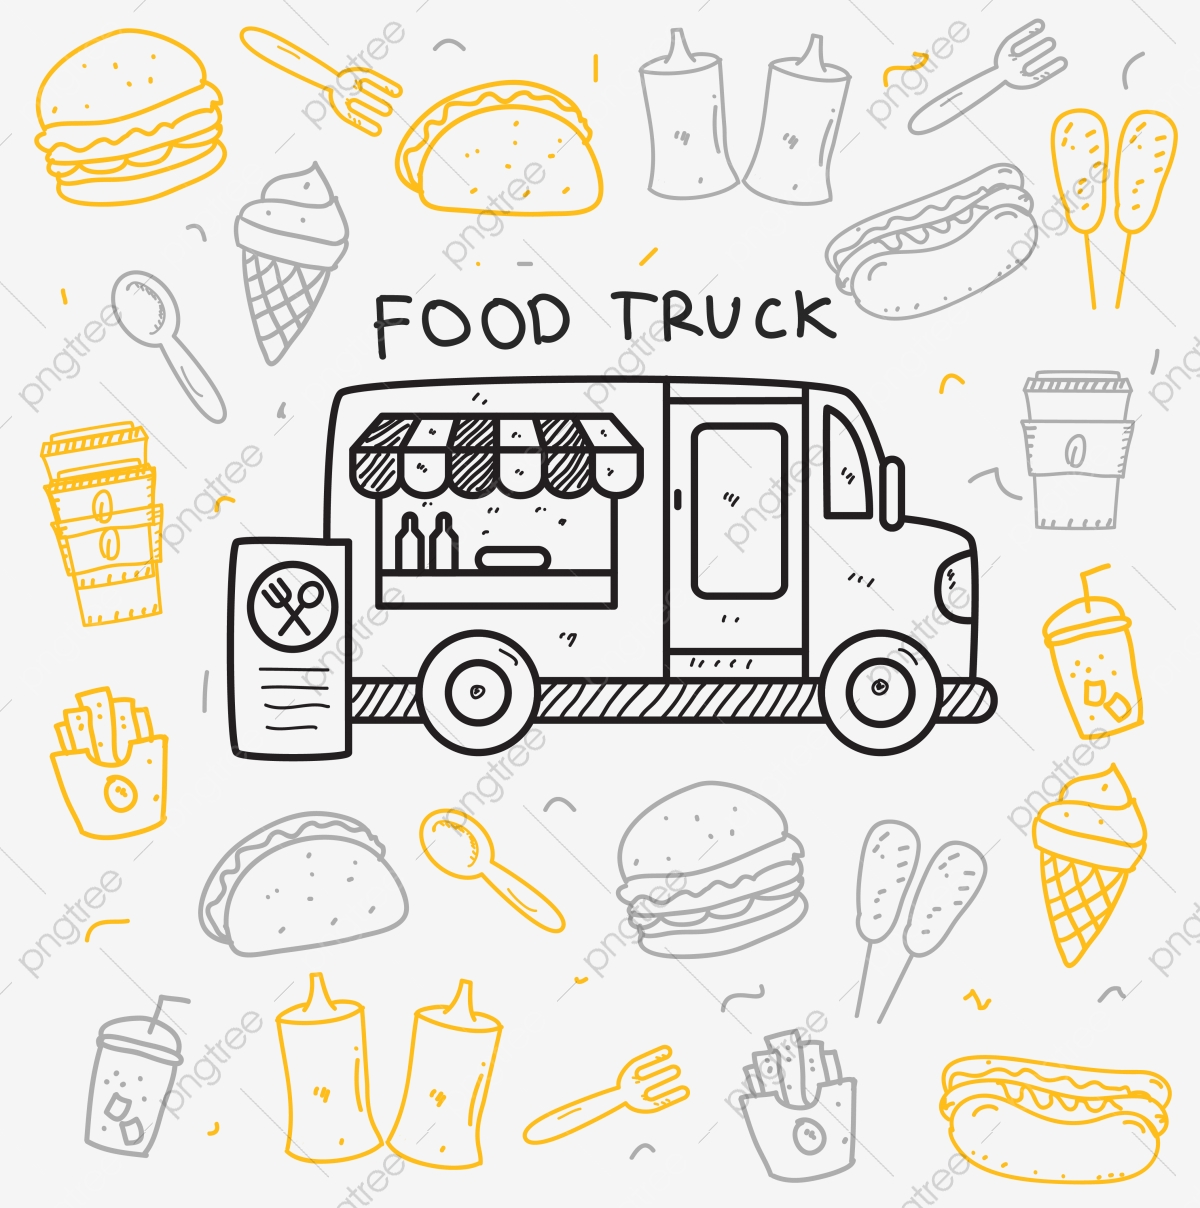 Food Truck Doodle Vector Illustration In Cute Hand Drawn Style Doodle Food Street Food Png And Vector With Transparent Background For Free Download